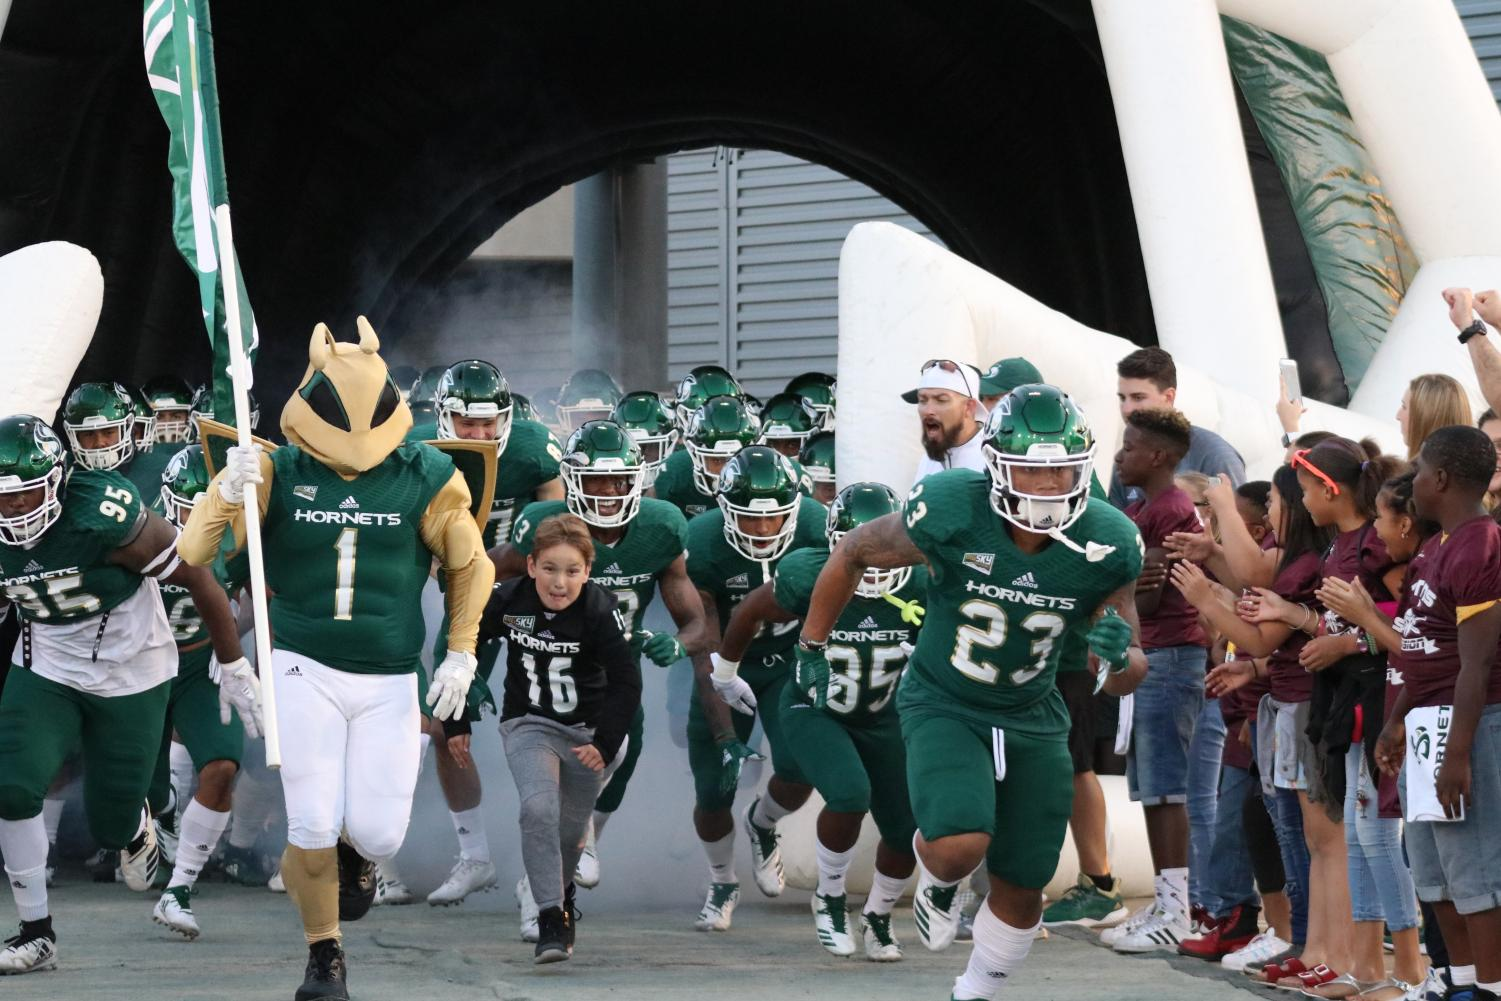 Sac State takes the field on Oct. 20 against North Dakota. The Hornets will host Portland State Saturday at 6 p.m.